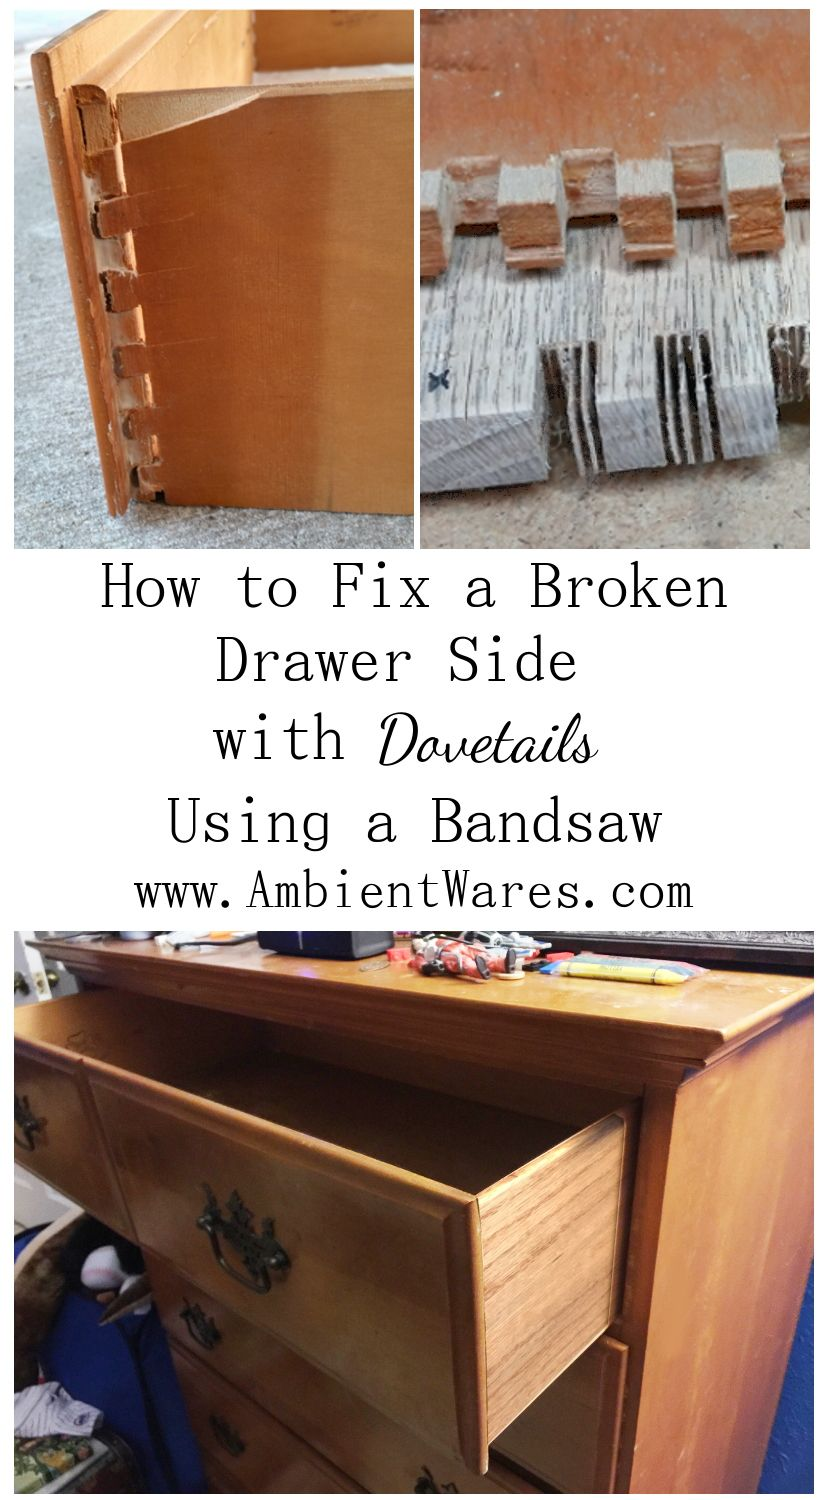 How To Fix A Broken Drawer Side With Dovetails Using A Bandsaw Ambient Wares Drawers Wooden Drawers Furniture Makeover